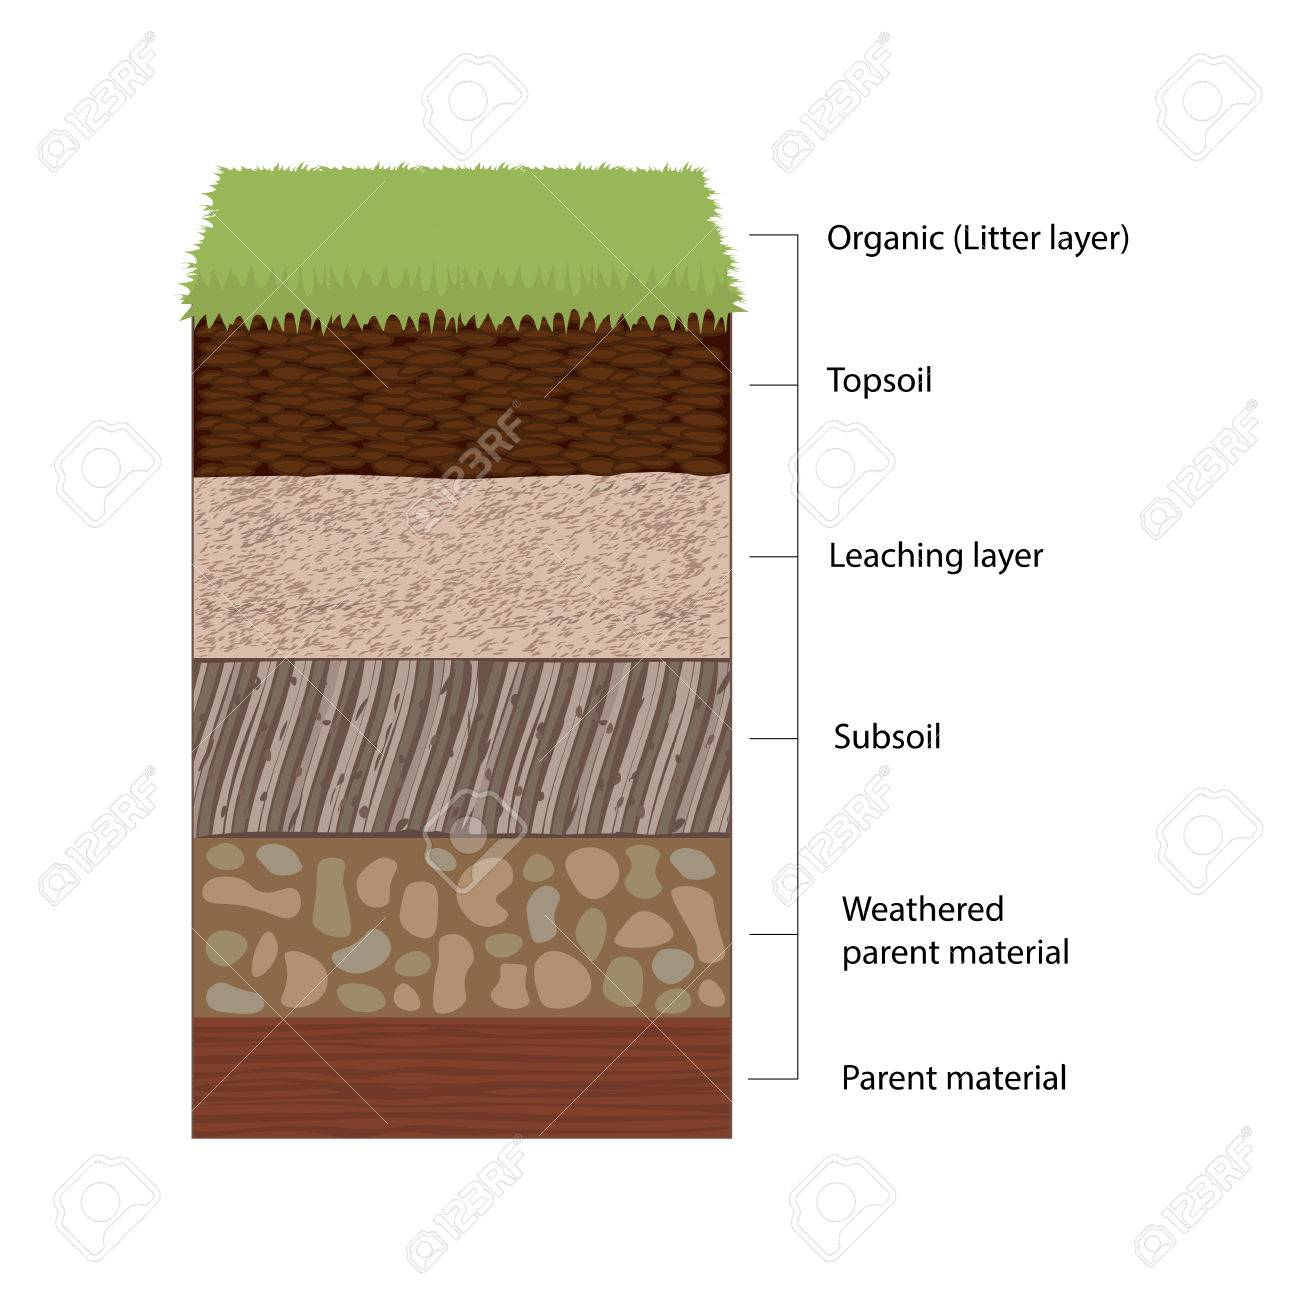 Soil Horizons And Layers Royalty Free Cliparts, Vectors, And Stock  Illustration. Image 74953262.